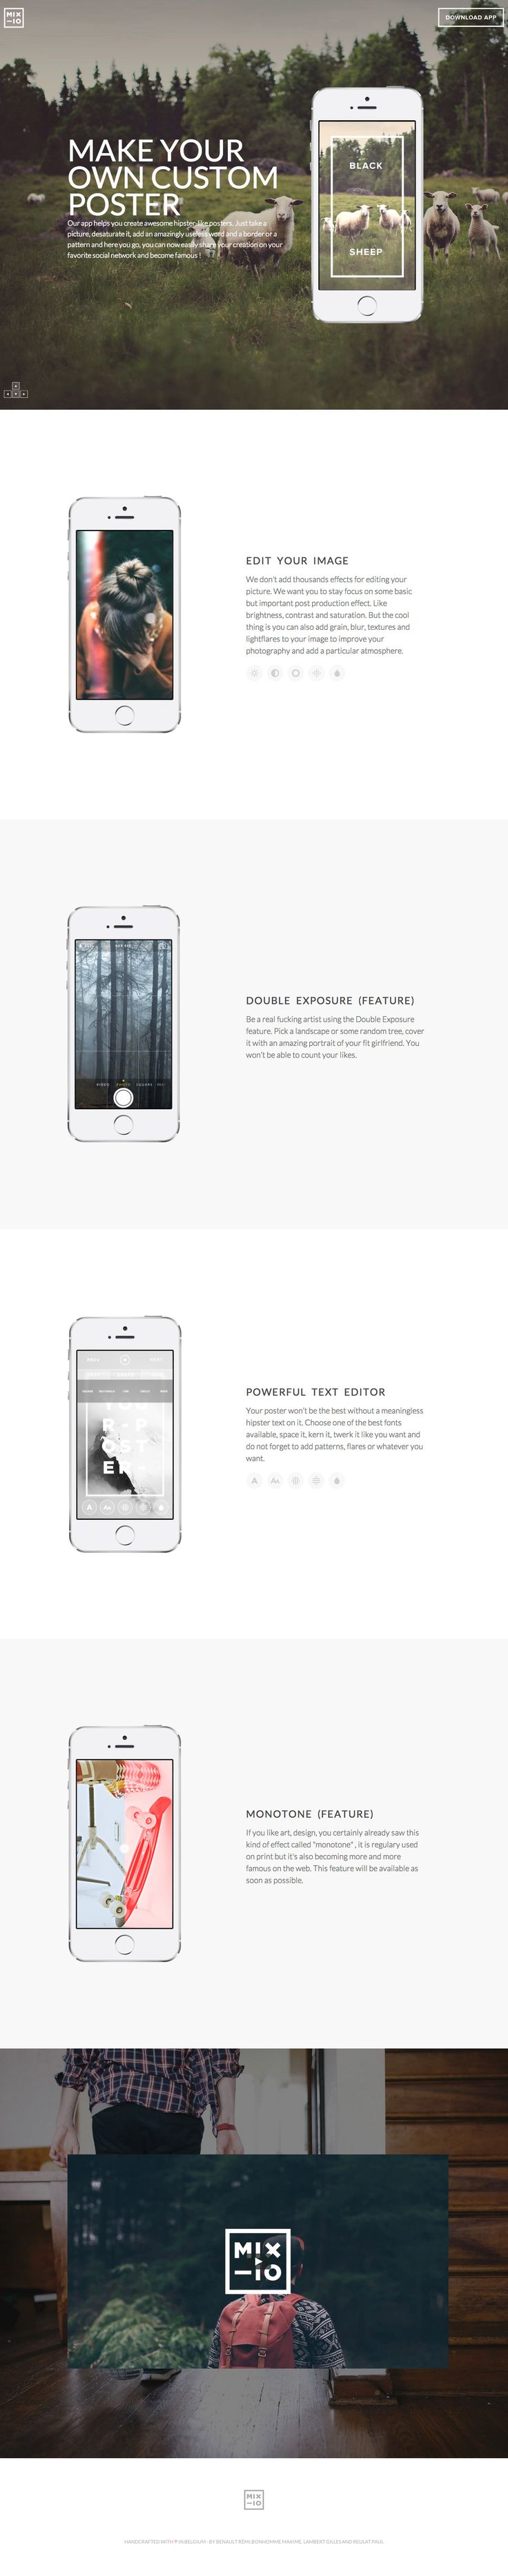 Beautifully designed responsive one pager for 'Mixio' - an app to create hipster-like posters from your photos. I absolutely love how the site fills a big screen with tons of breathing room creating focus on the interactive devices. The video at the end just oozes hipster and does a great job summing up the app.